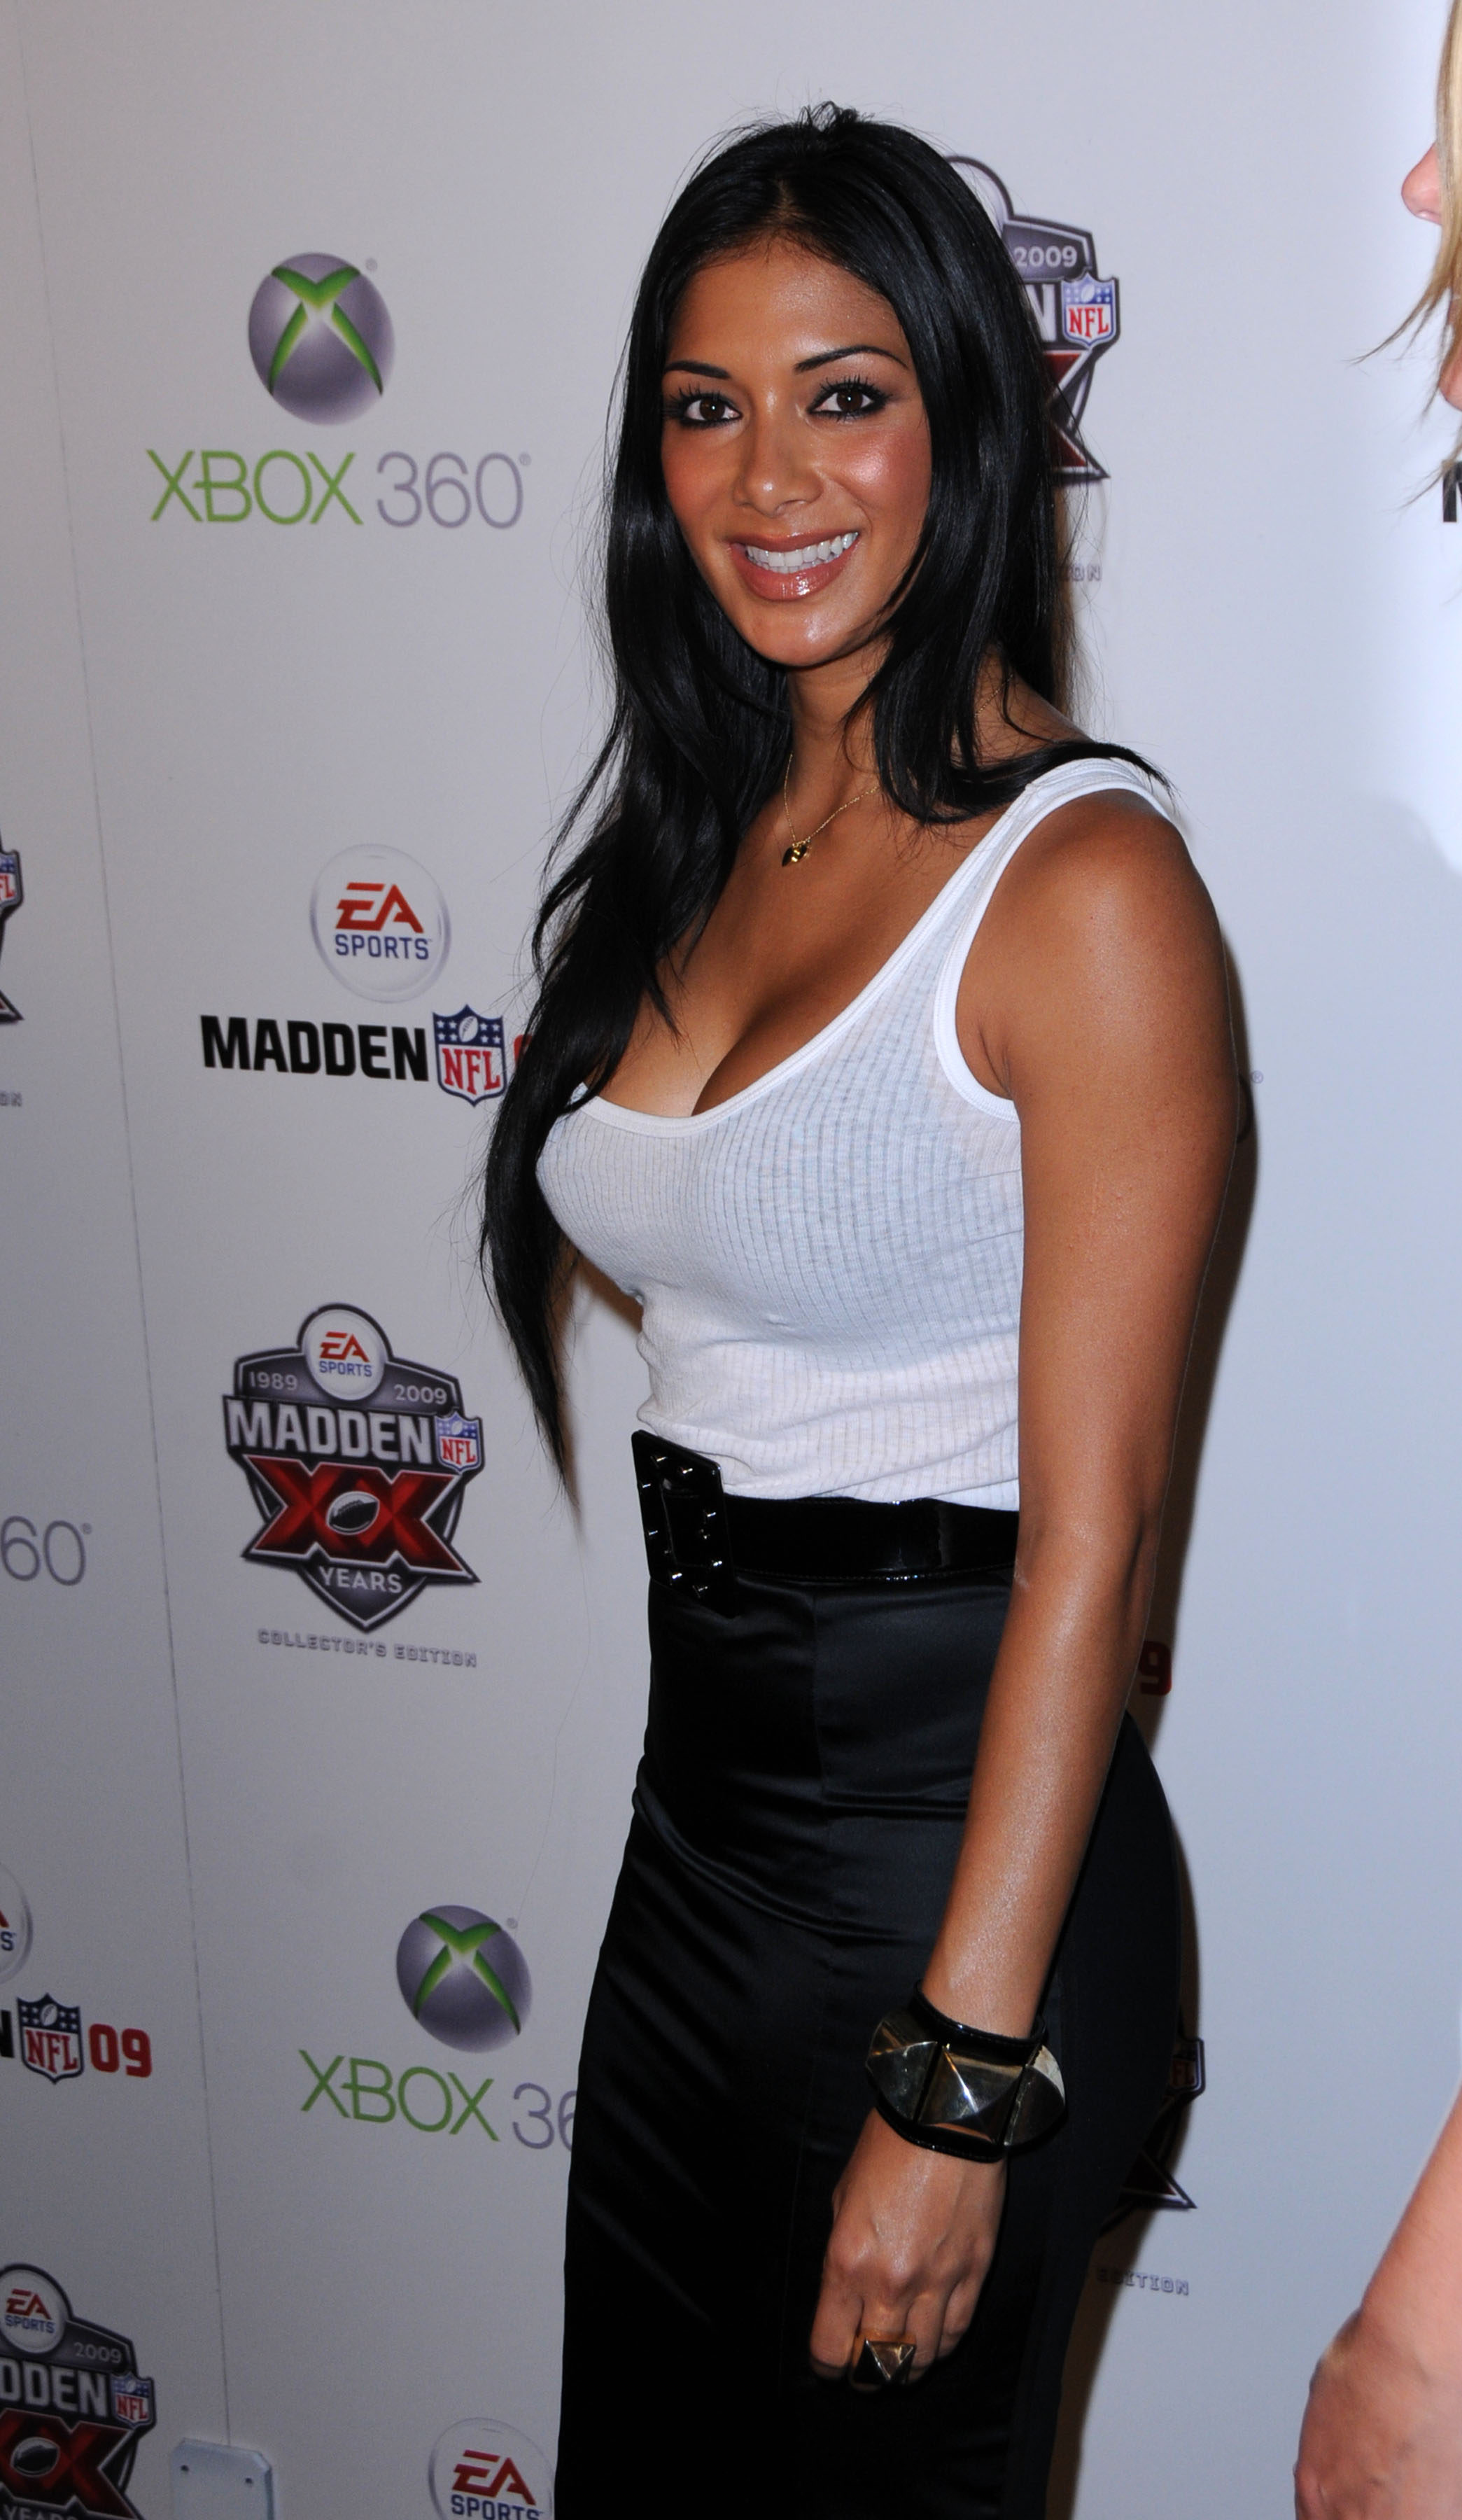 Nicole Scherzinger Photo 2040 Of 3210 Pics Wallpaper